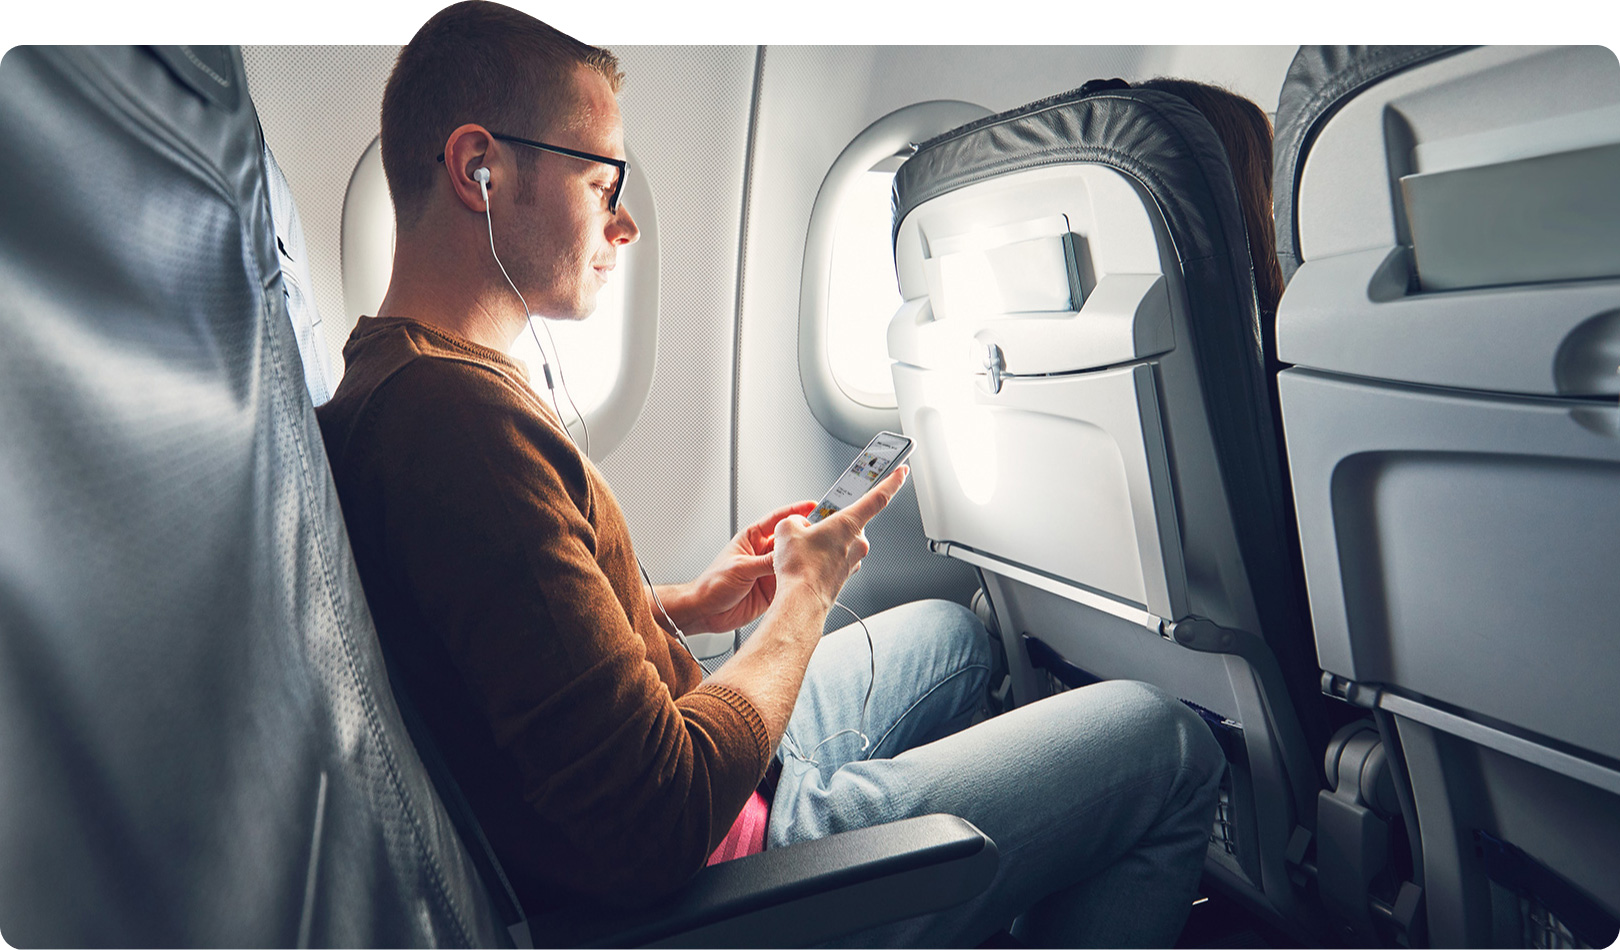 Man on airplane using the onDemand product